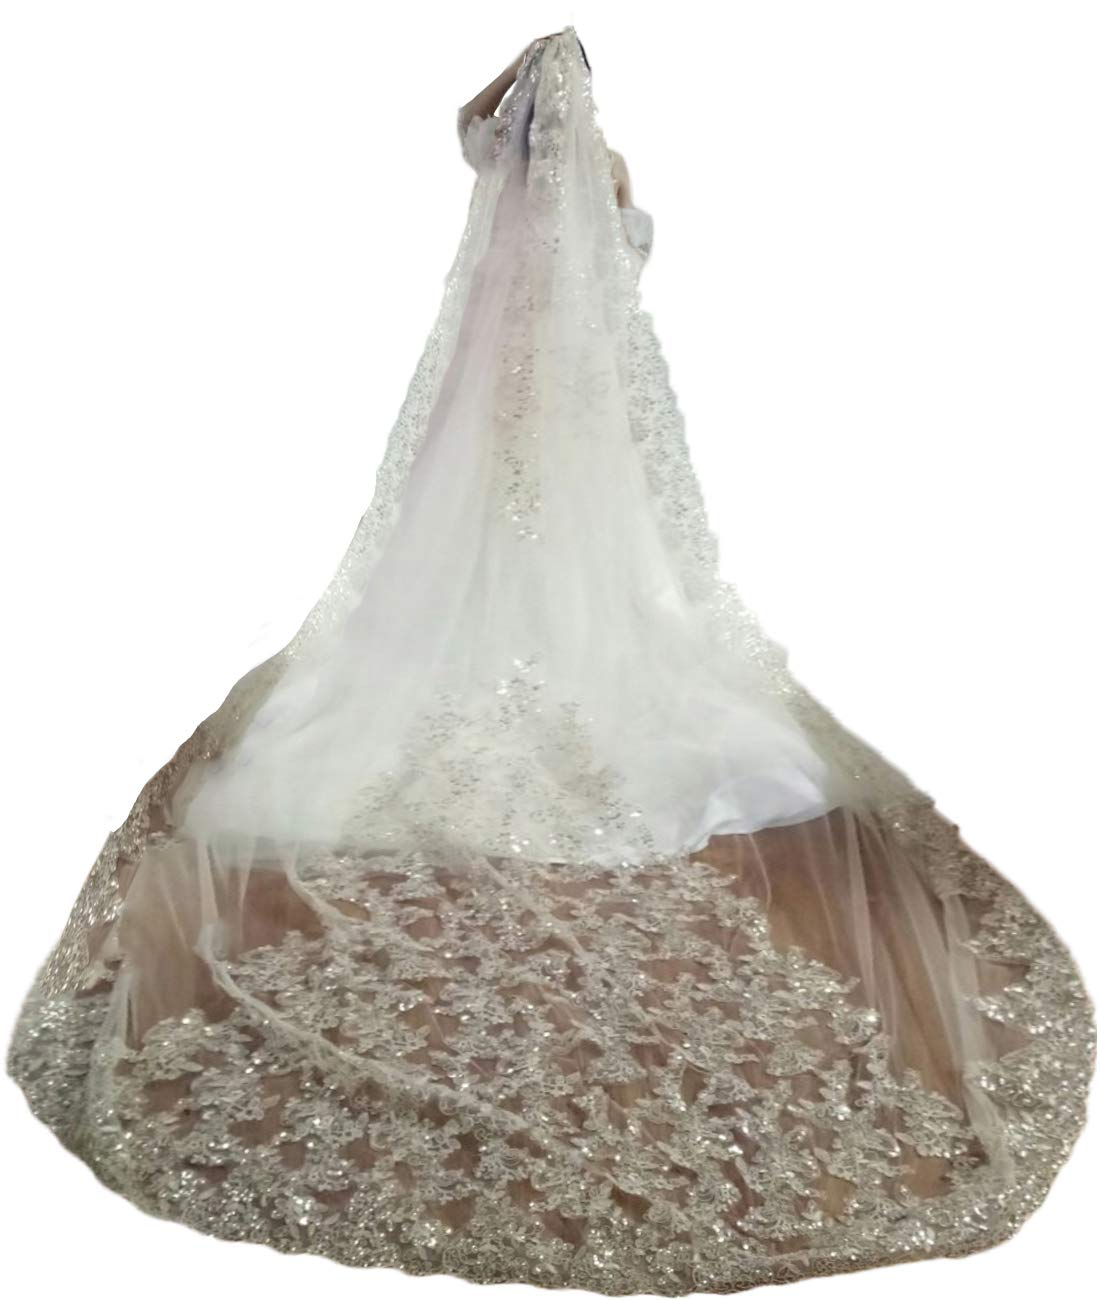 Faiokaver Wedding Veils 1 Tier Cathedral Floral Sequins Lace Bridal Accessories with Comb